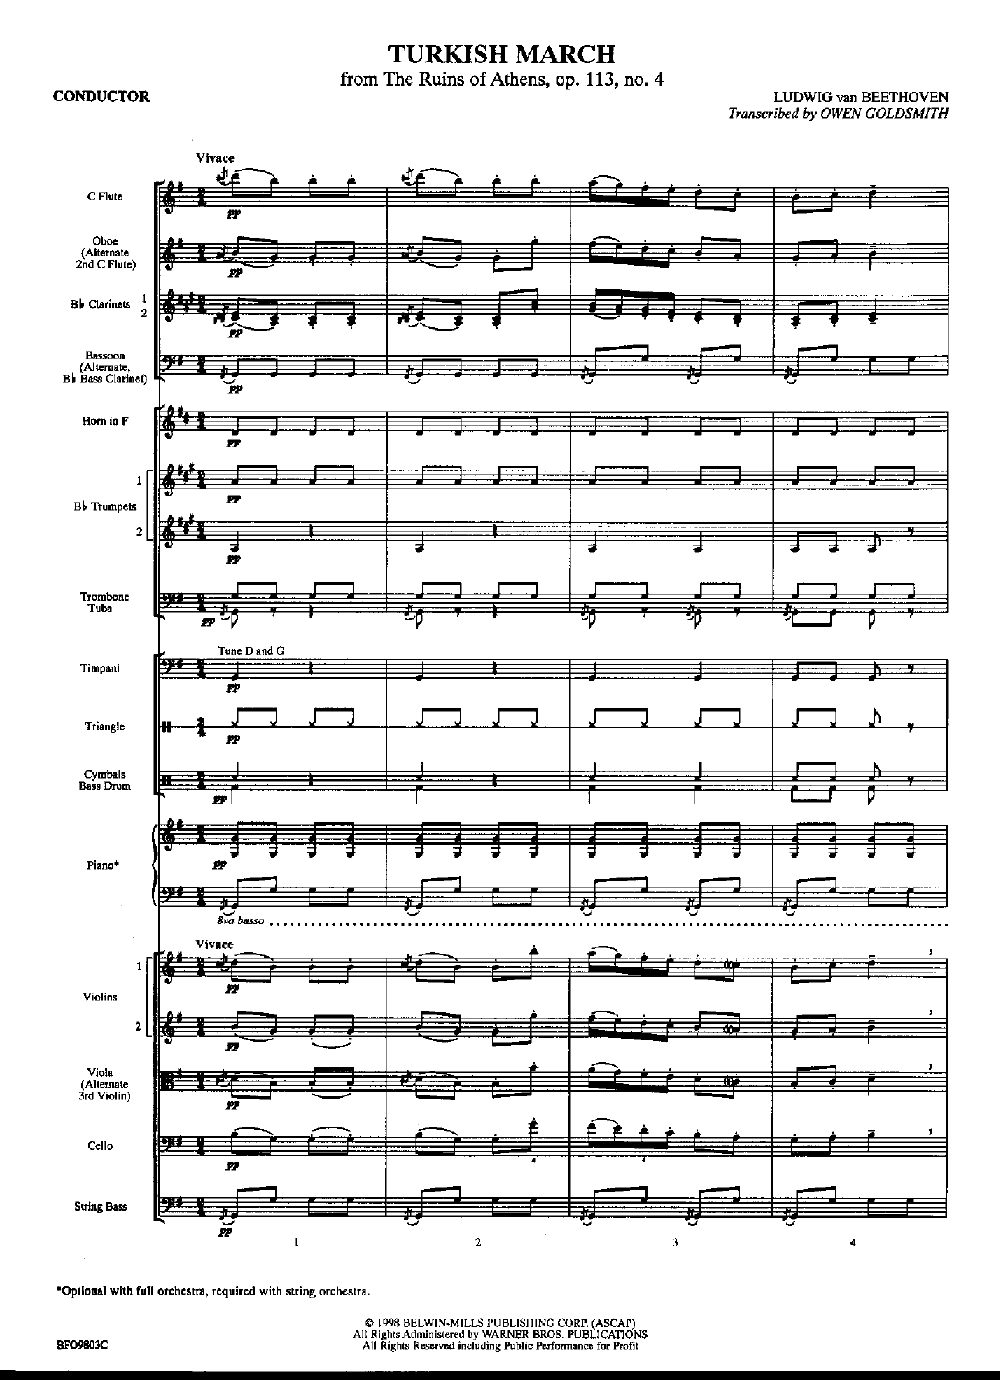 Turkish March by Beethoven/Goldsmith| J W  Pepper Sheet Music